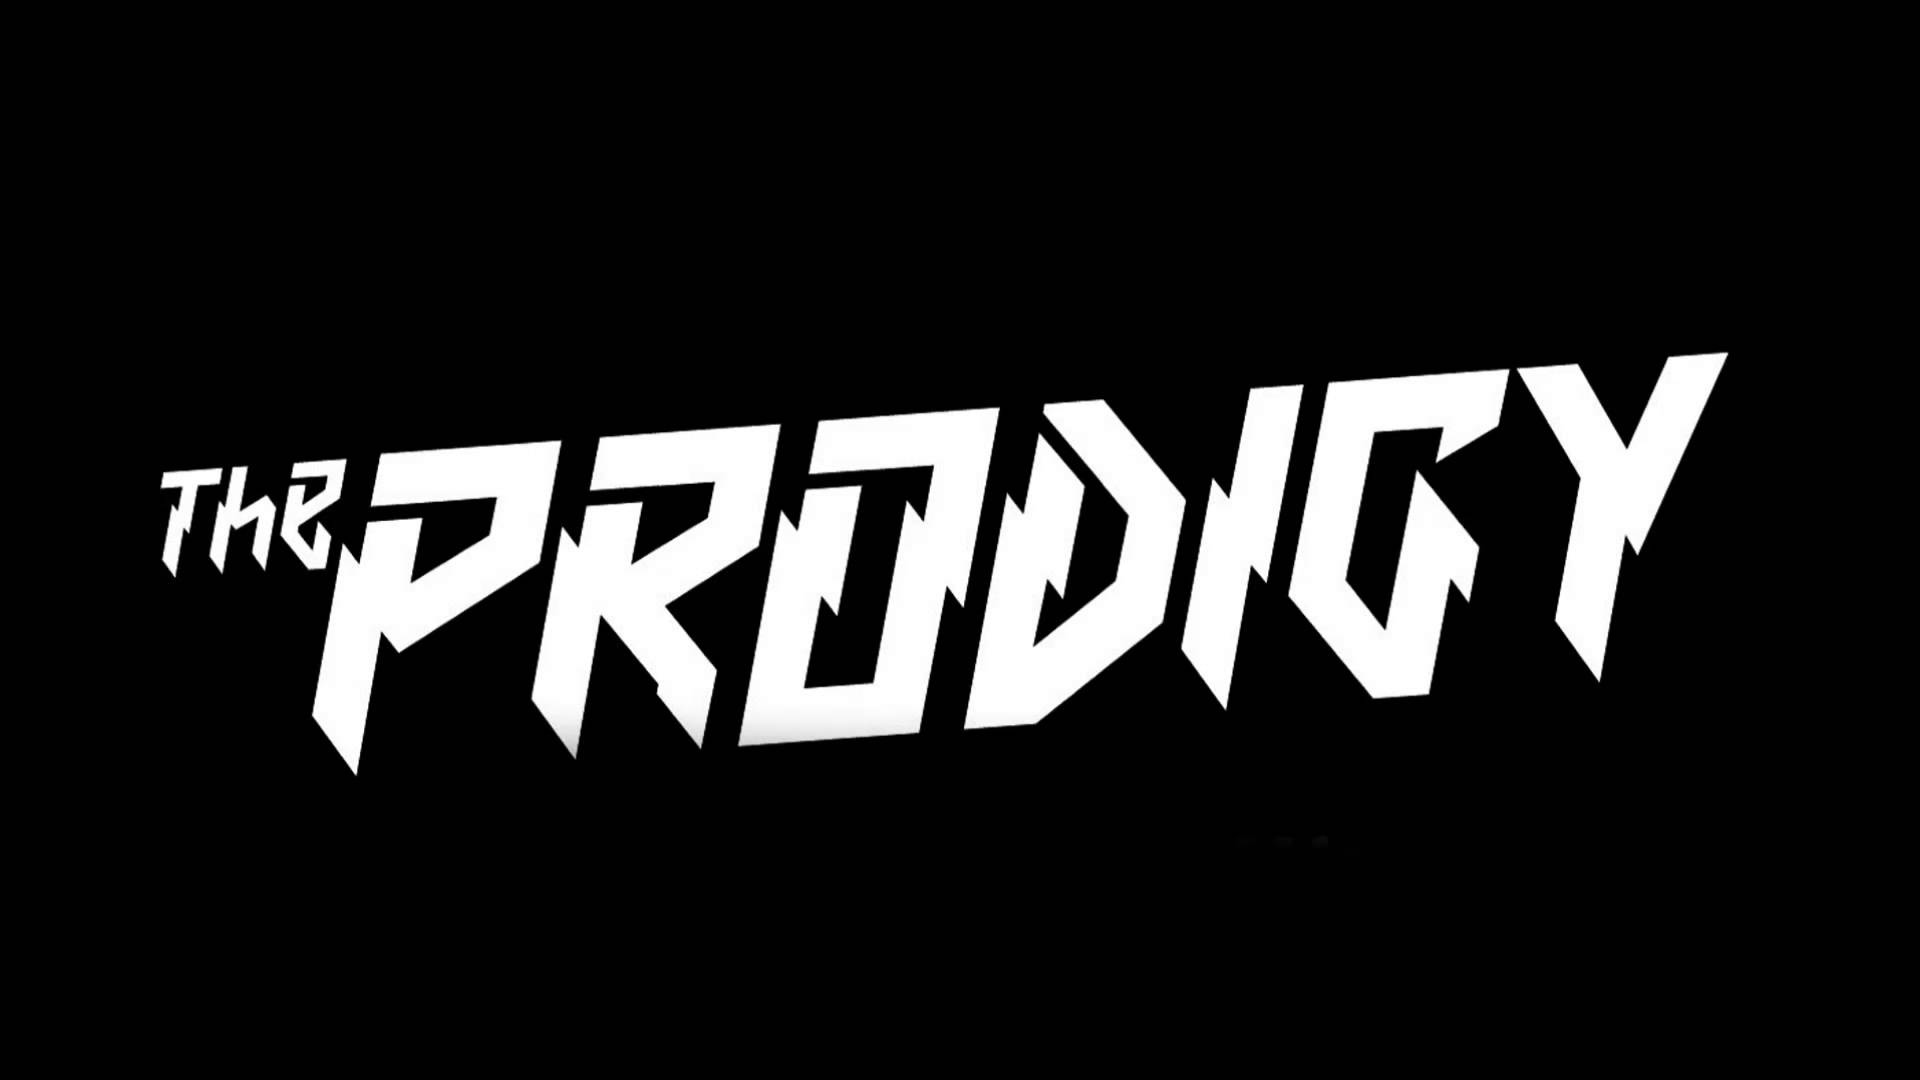 1920x1080 - Prodigy Wallpapers 10